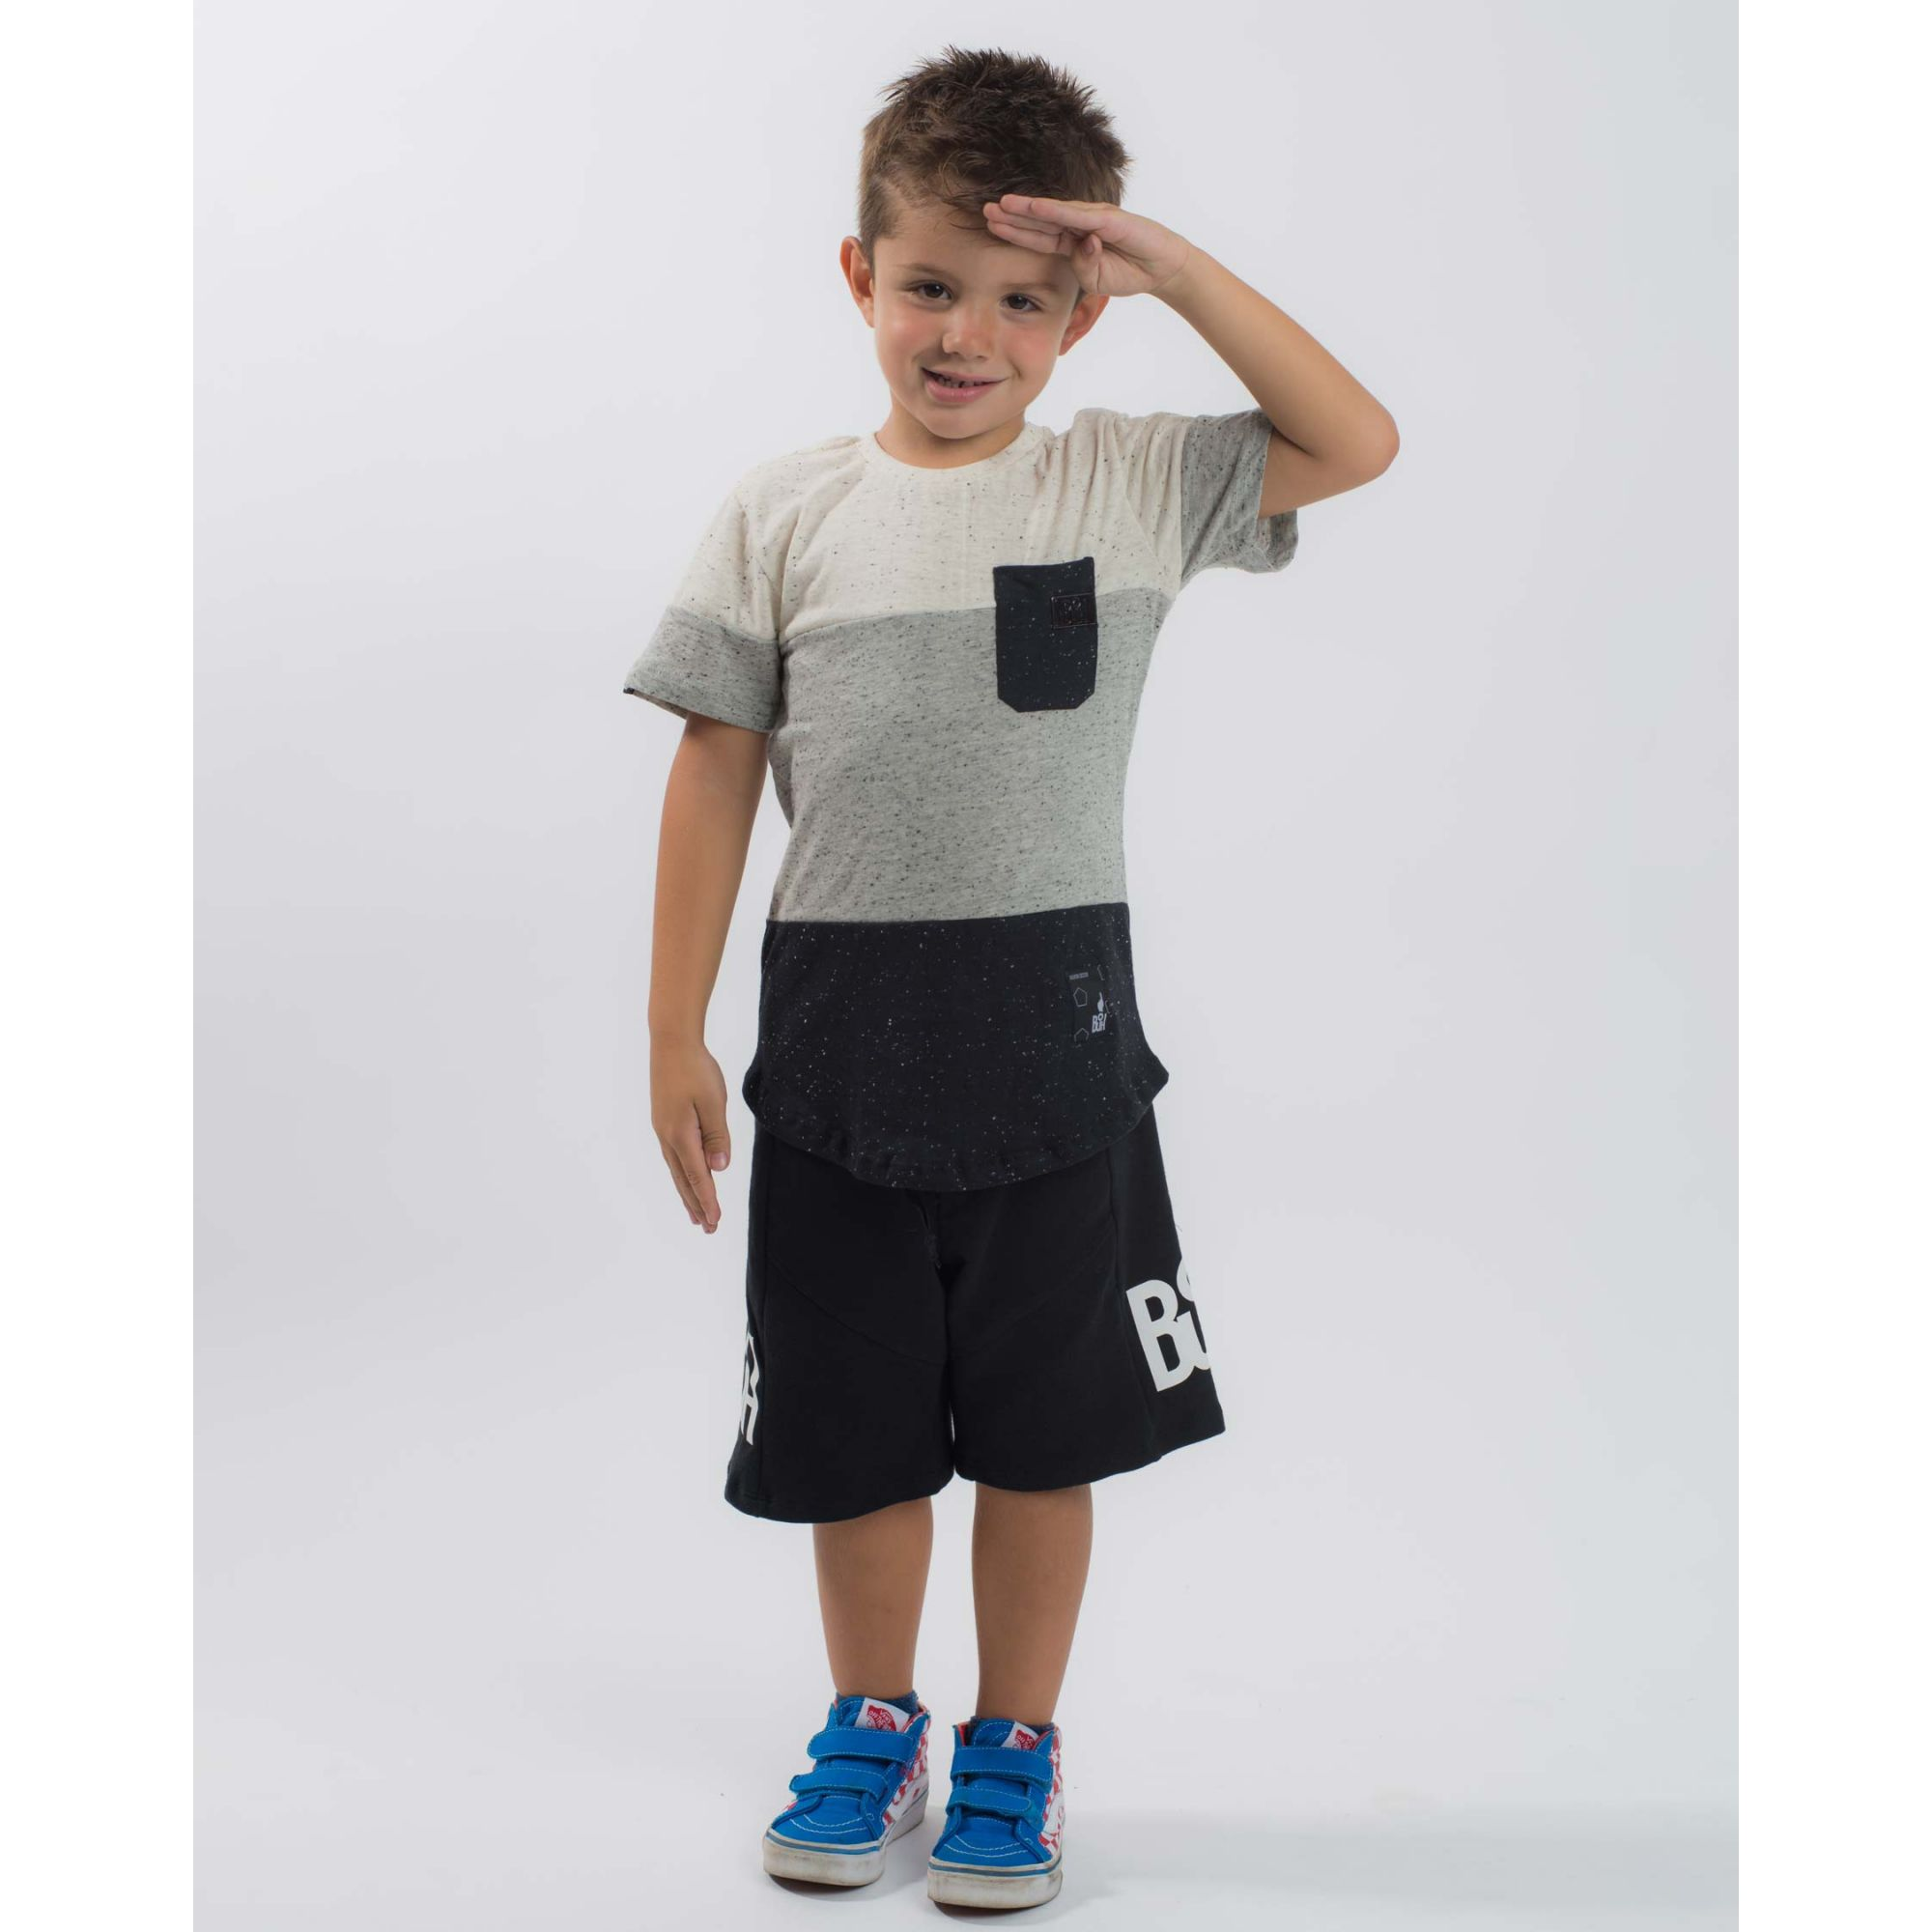 Camiseta Buh Kids Flag Botonê Three Colors